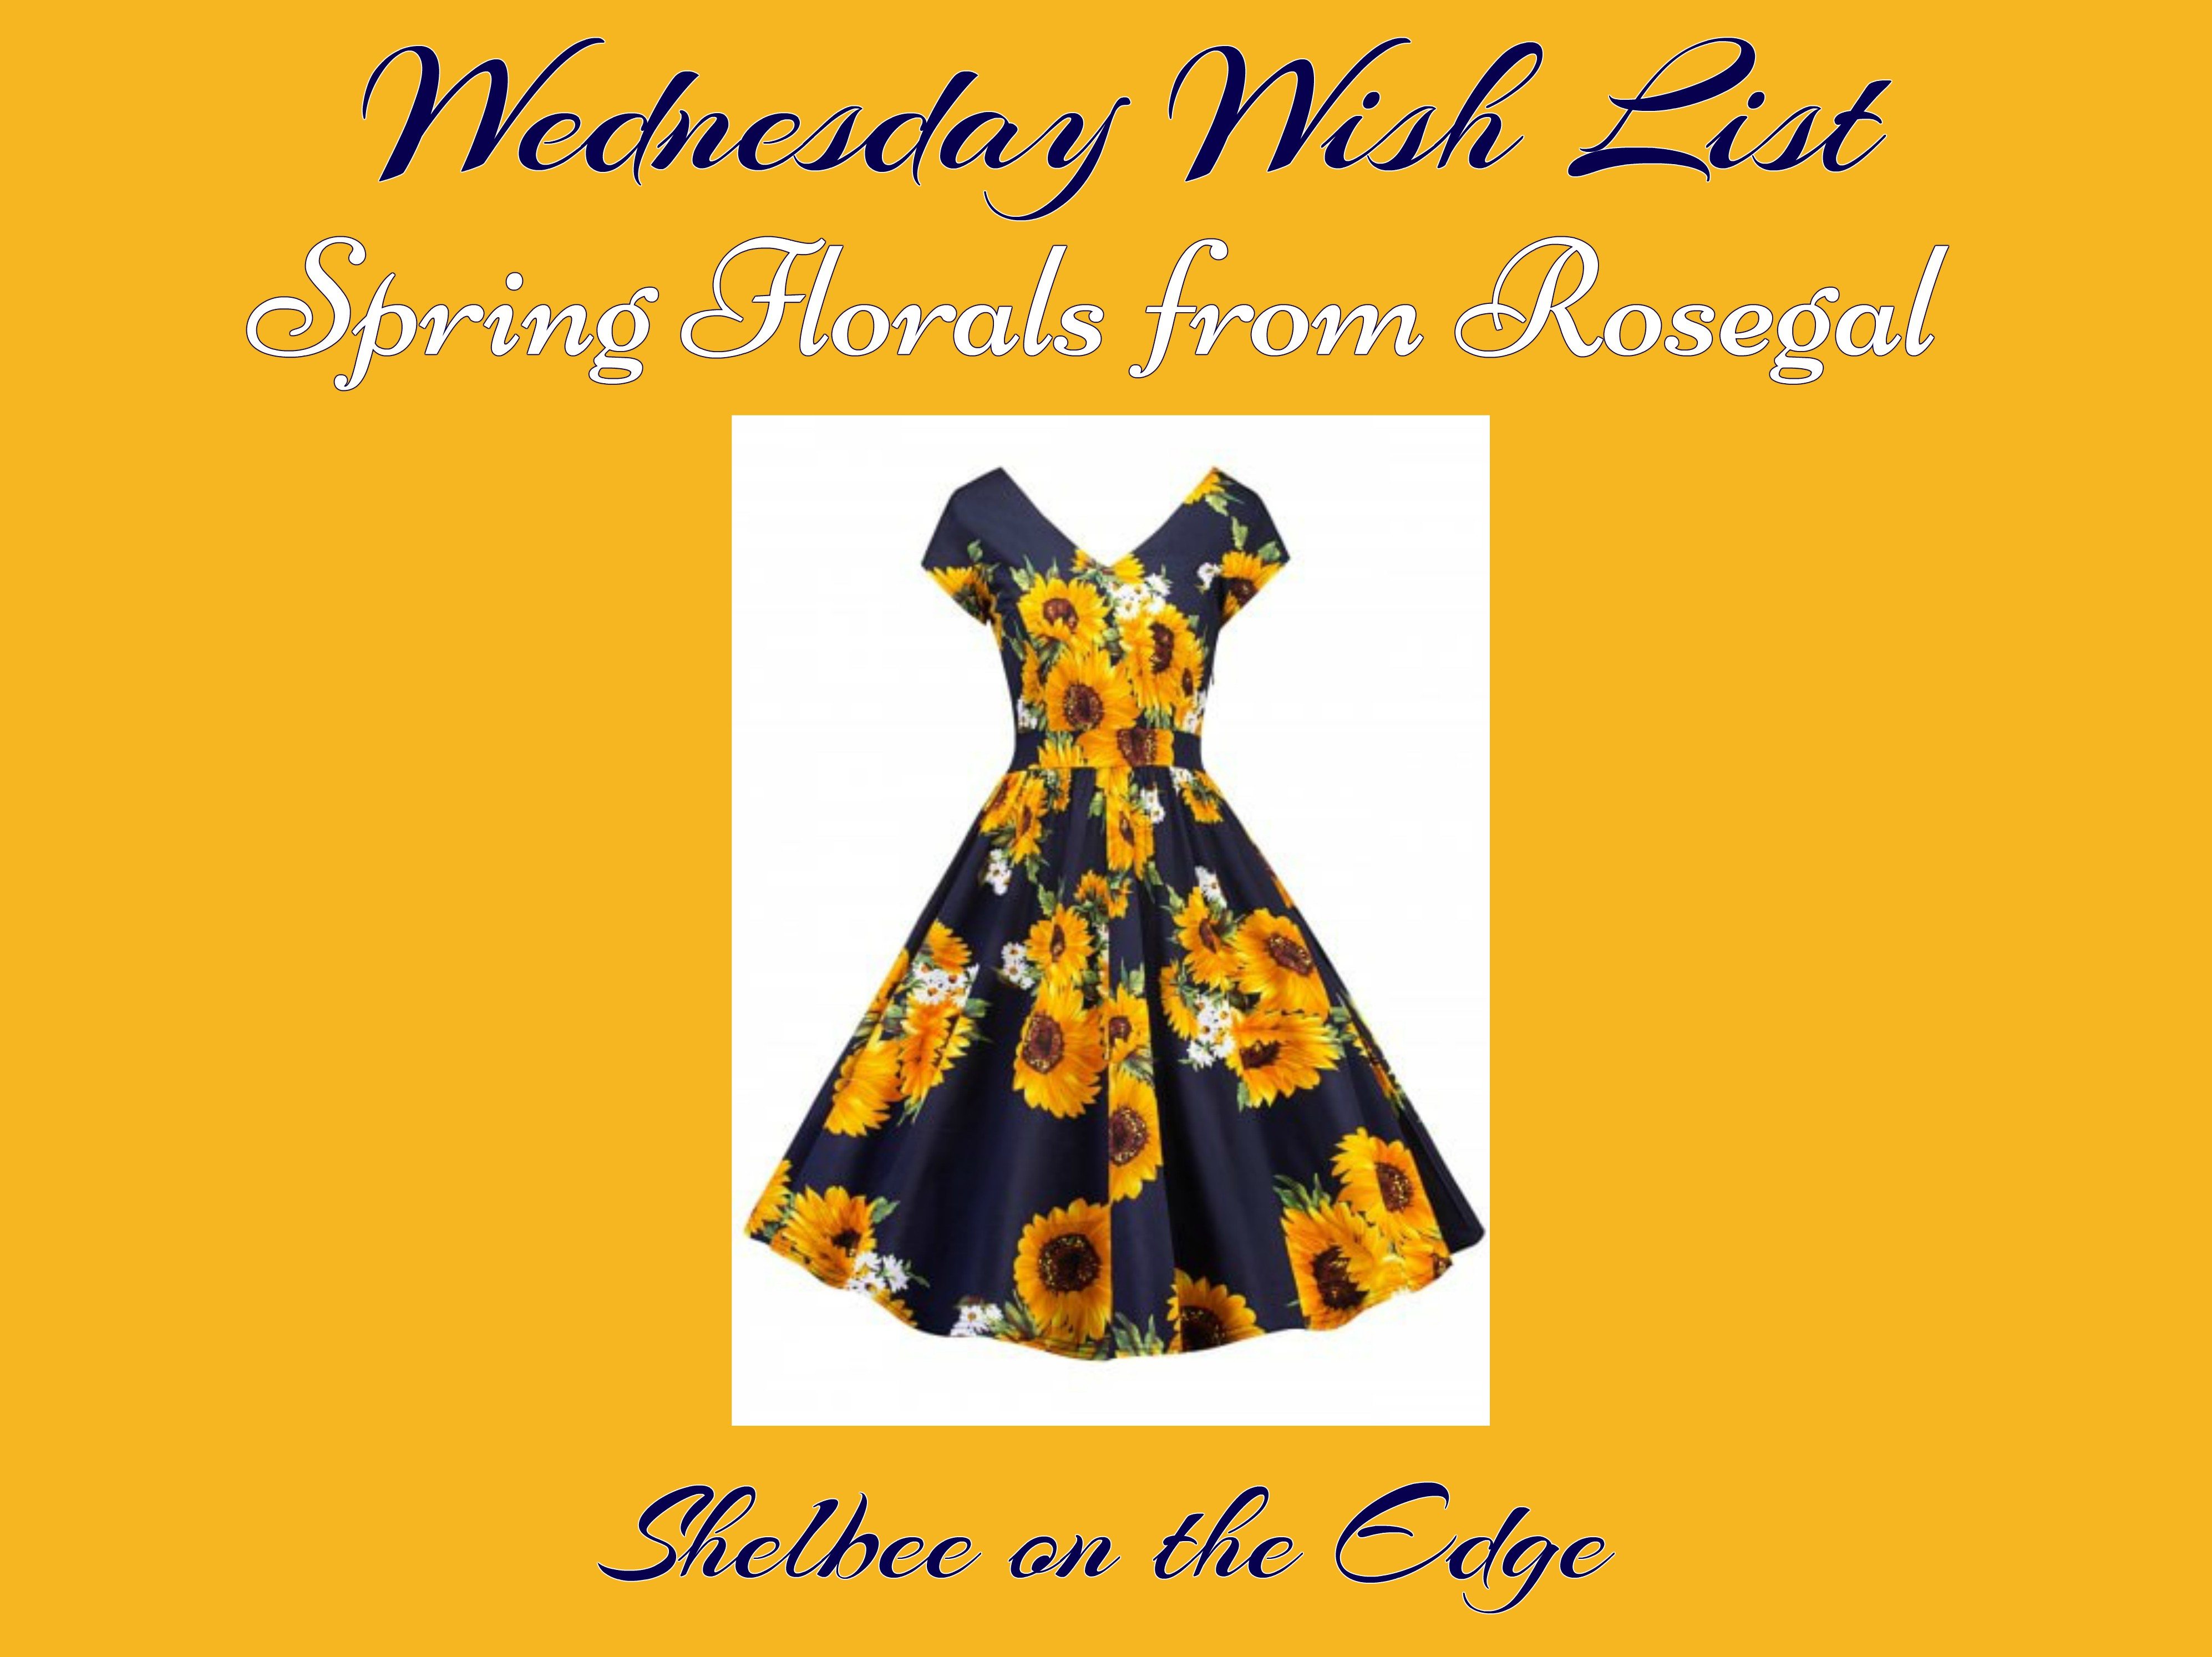 Wednesday Wish List: Spring Florals From Rosegal